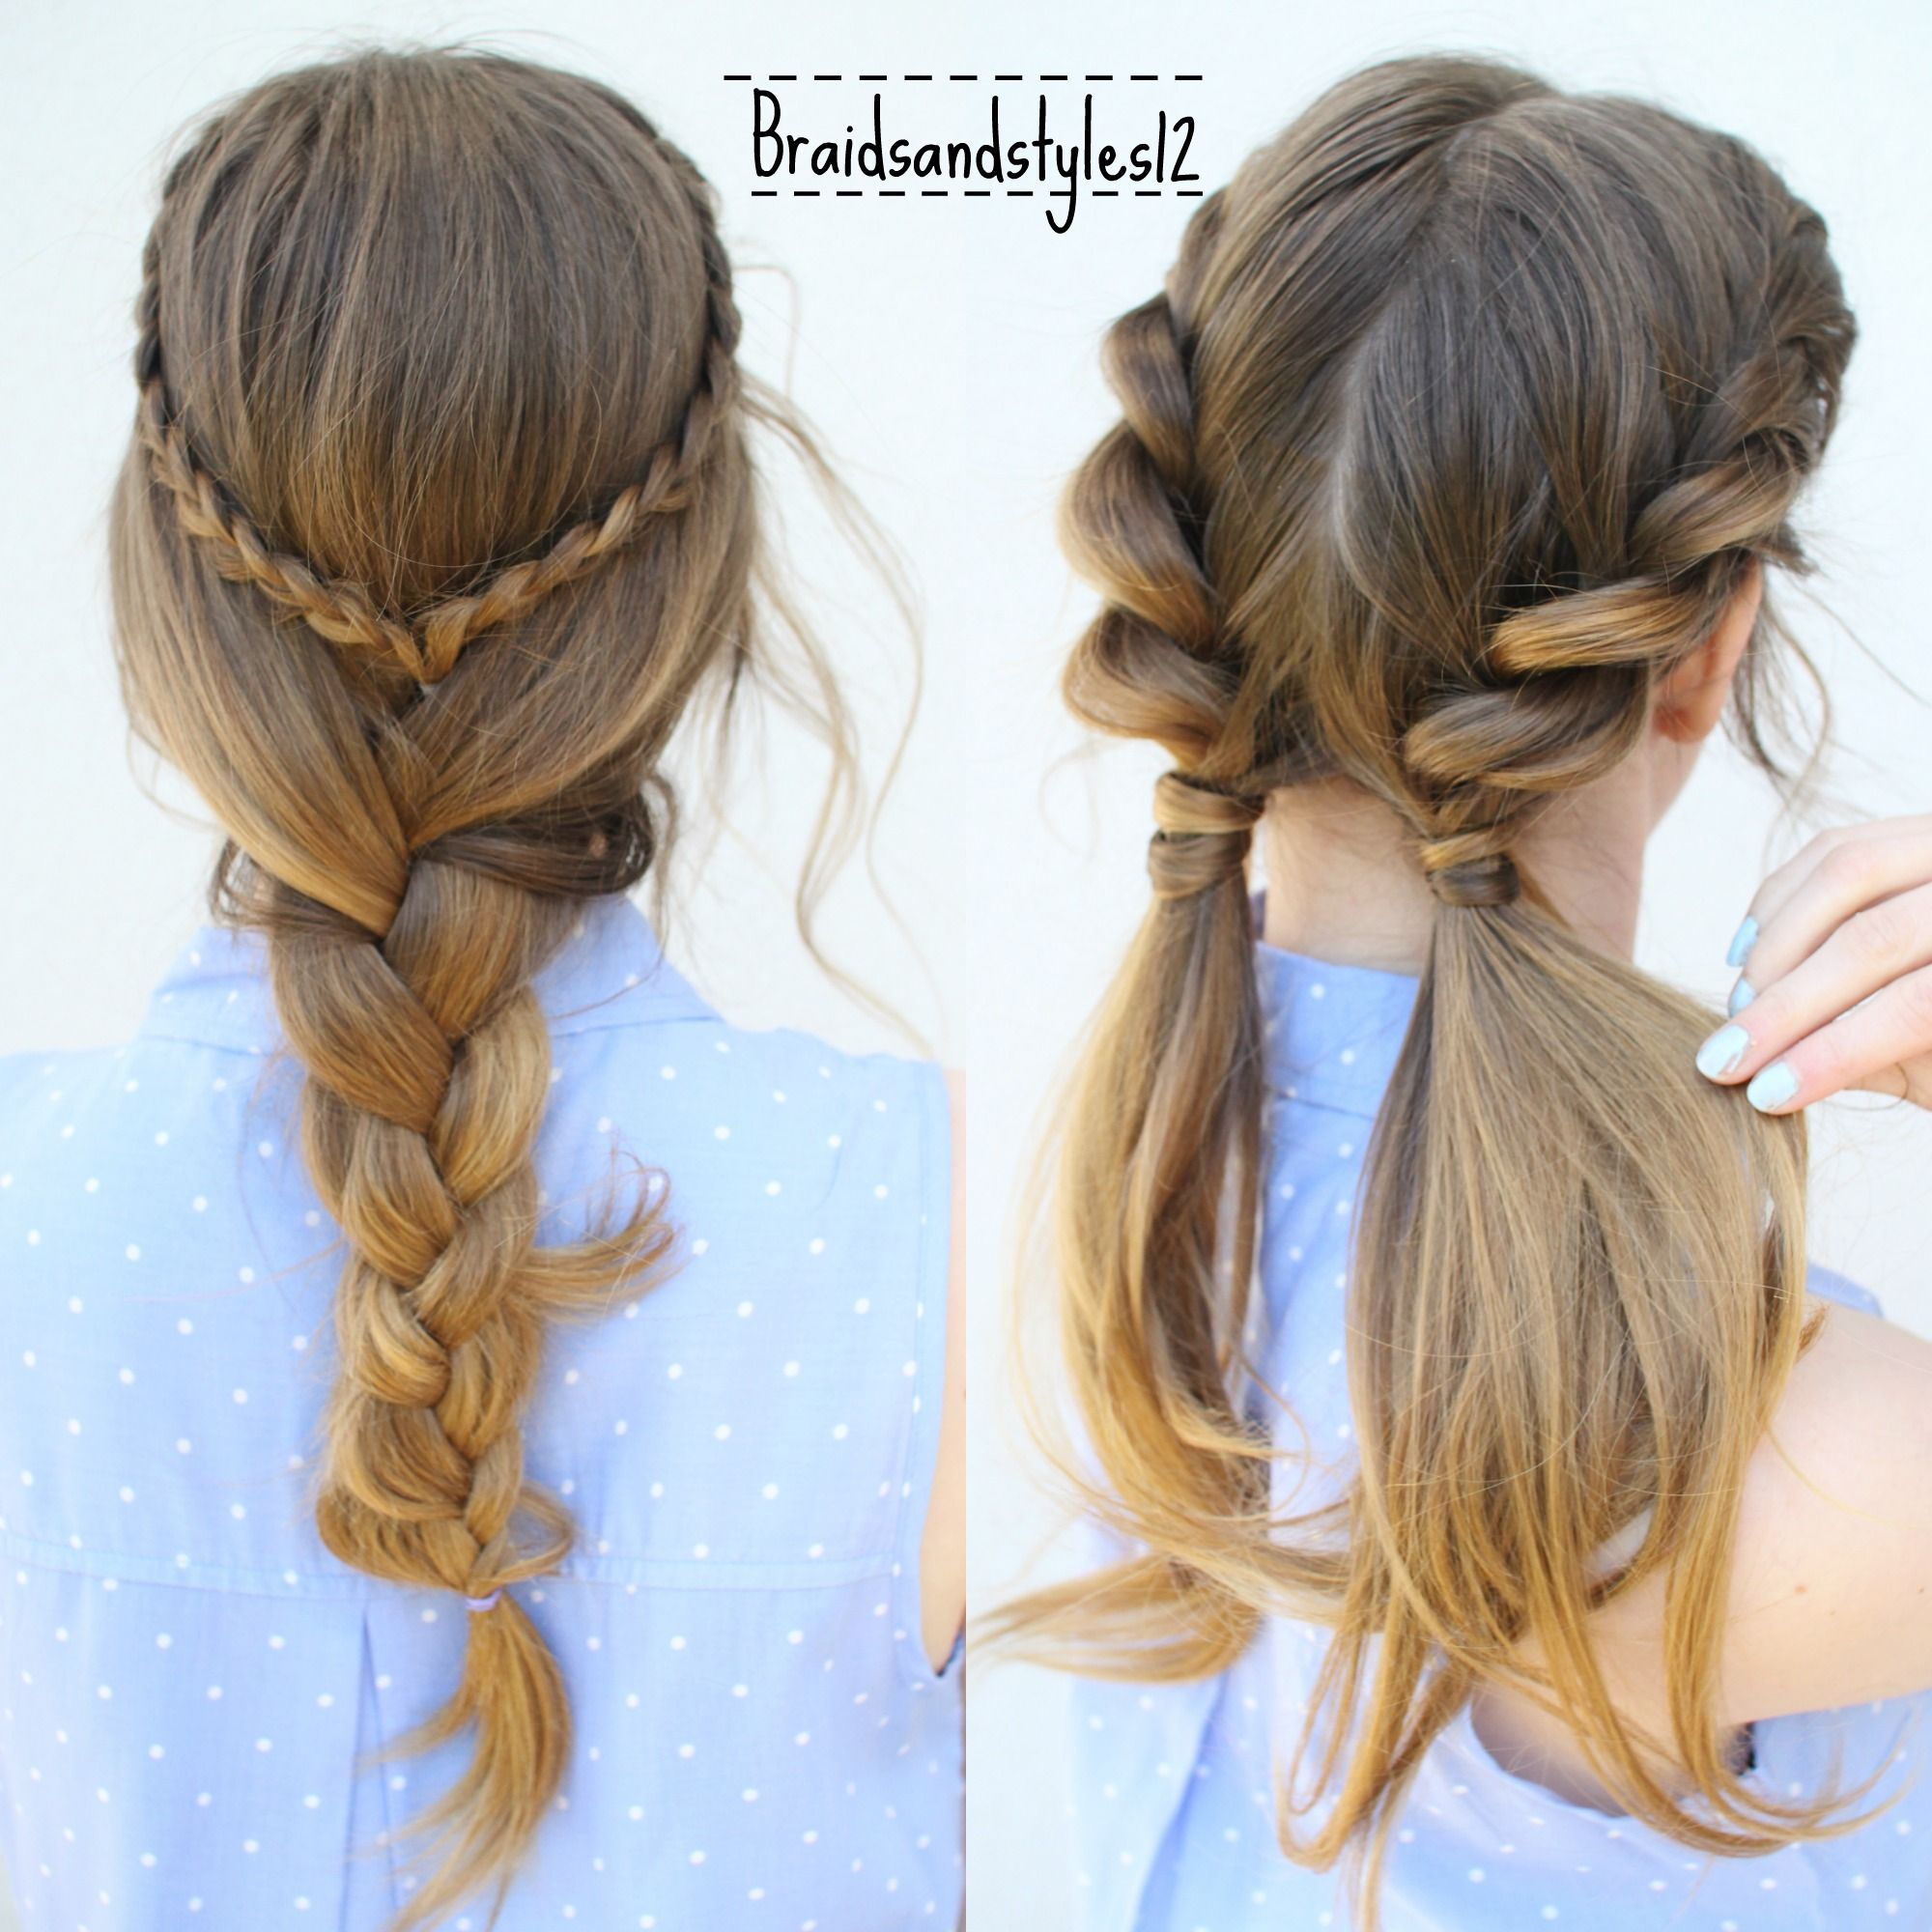 4 Easy Summer Hairstyle Ideas By Braidsandstyles12 Summer Braids Hair Styles Easy Summer Hairstyles Athletic Hairstyles